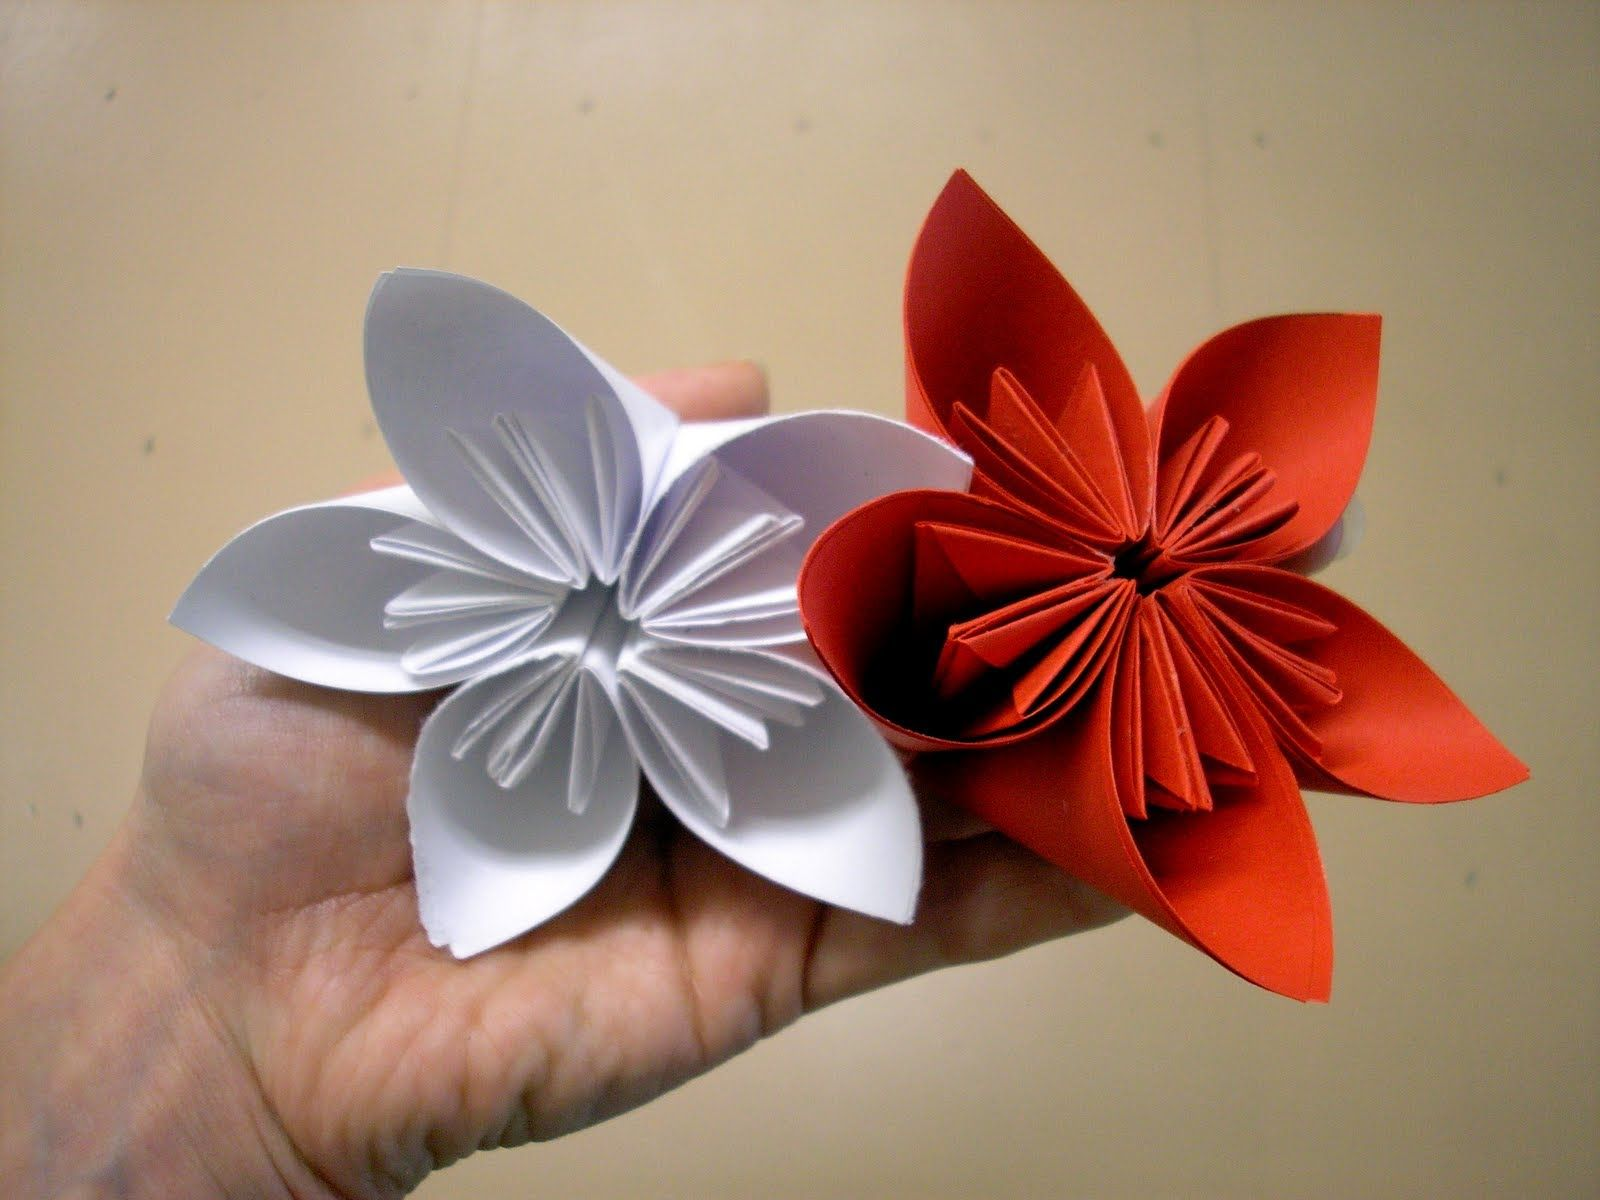 Origami flowers for beginners - How to make origami ... - photo#39